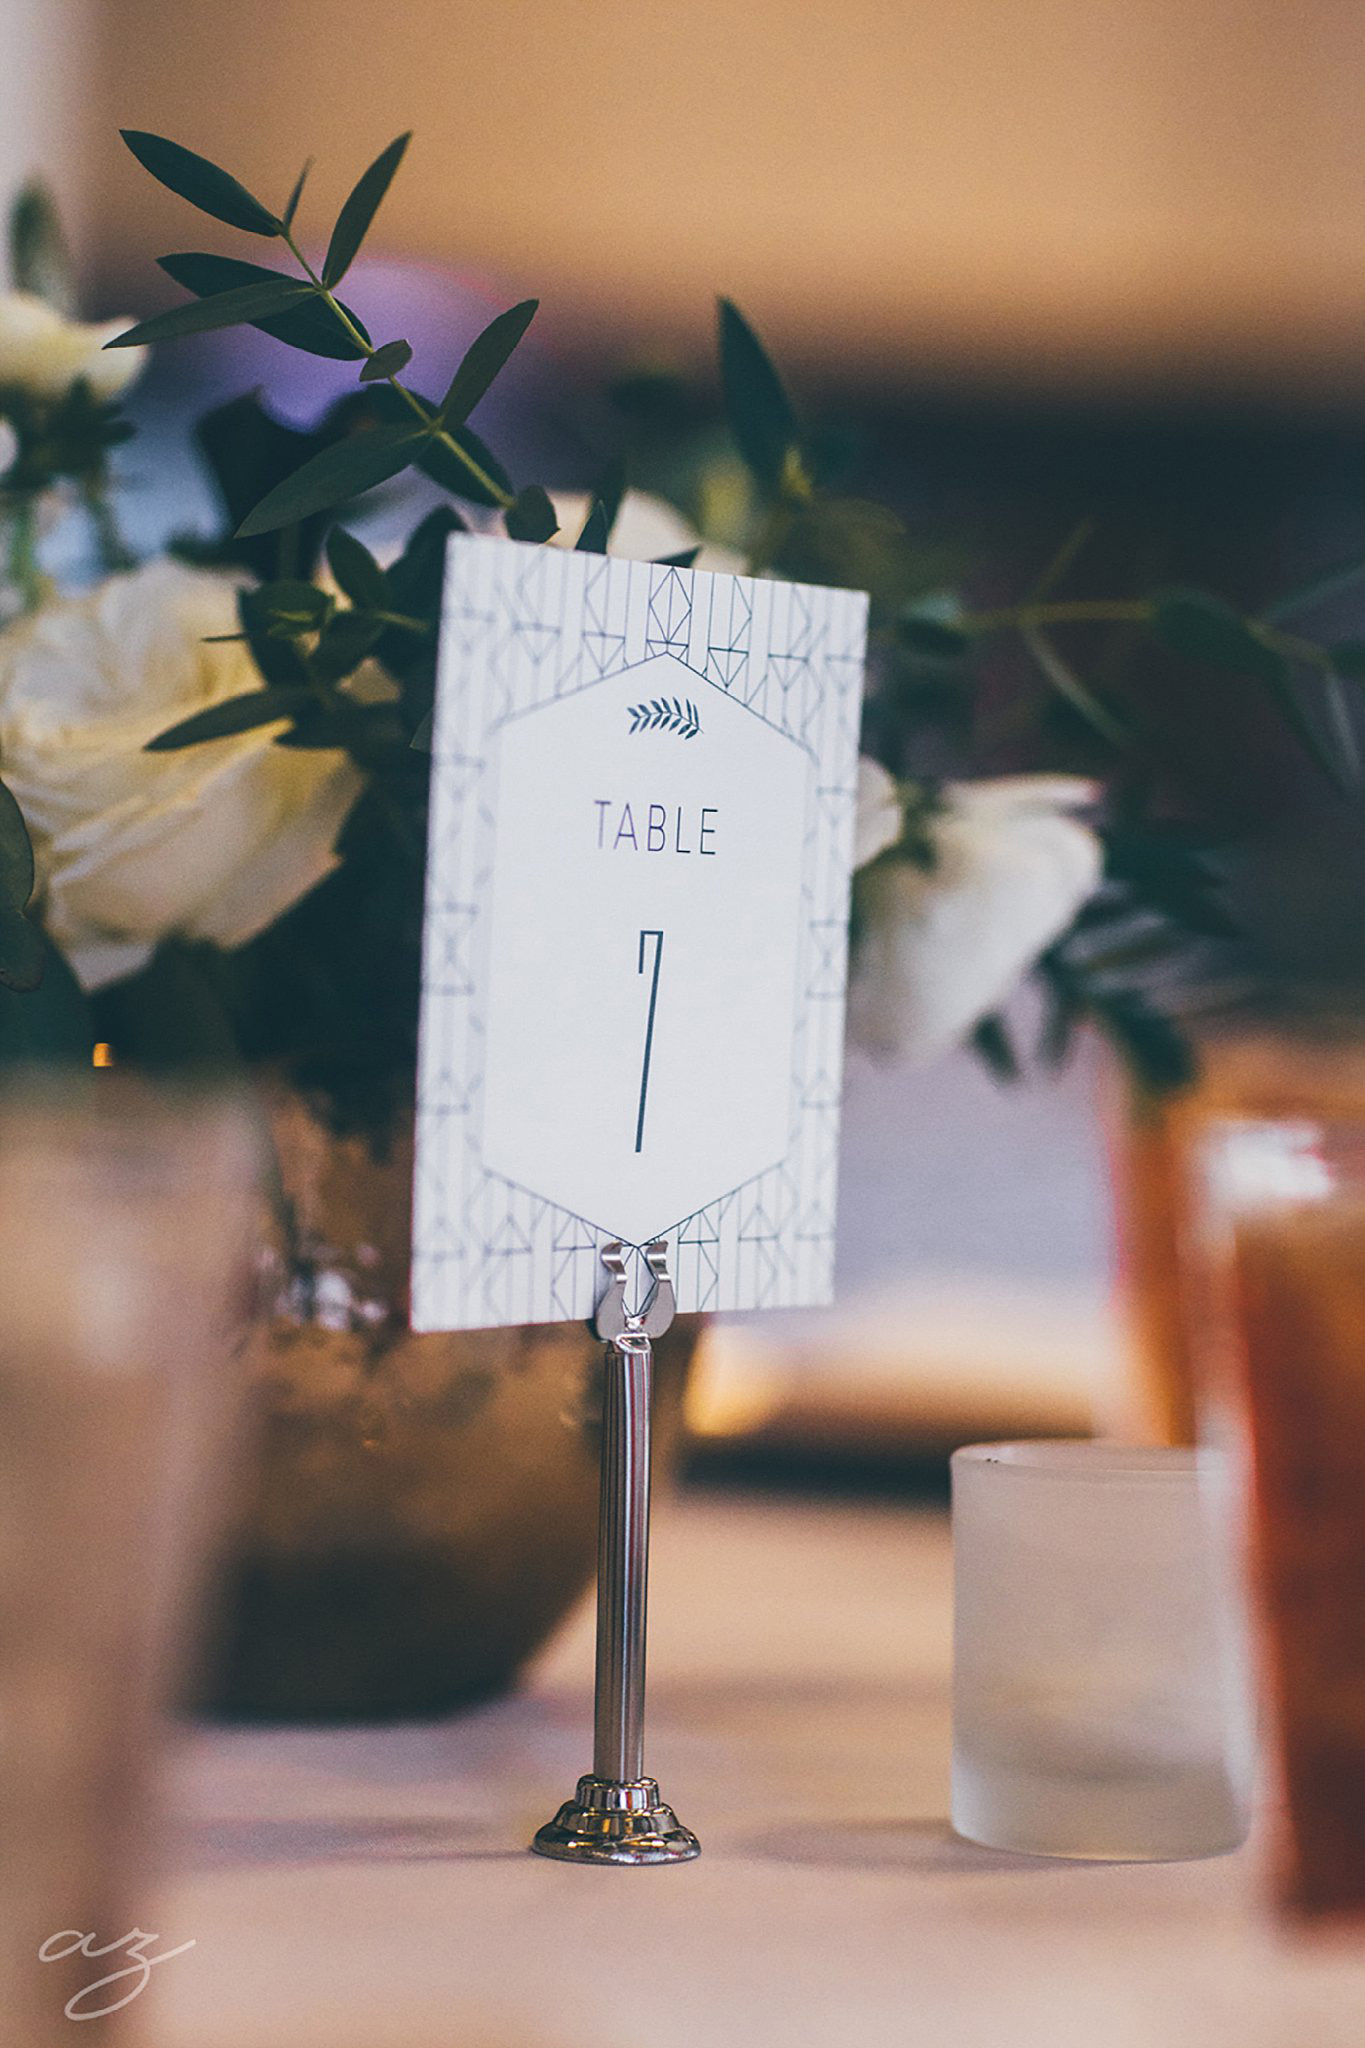 Carlisle Room wedding geometric table numbers